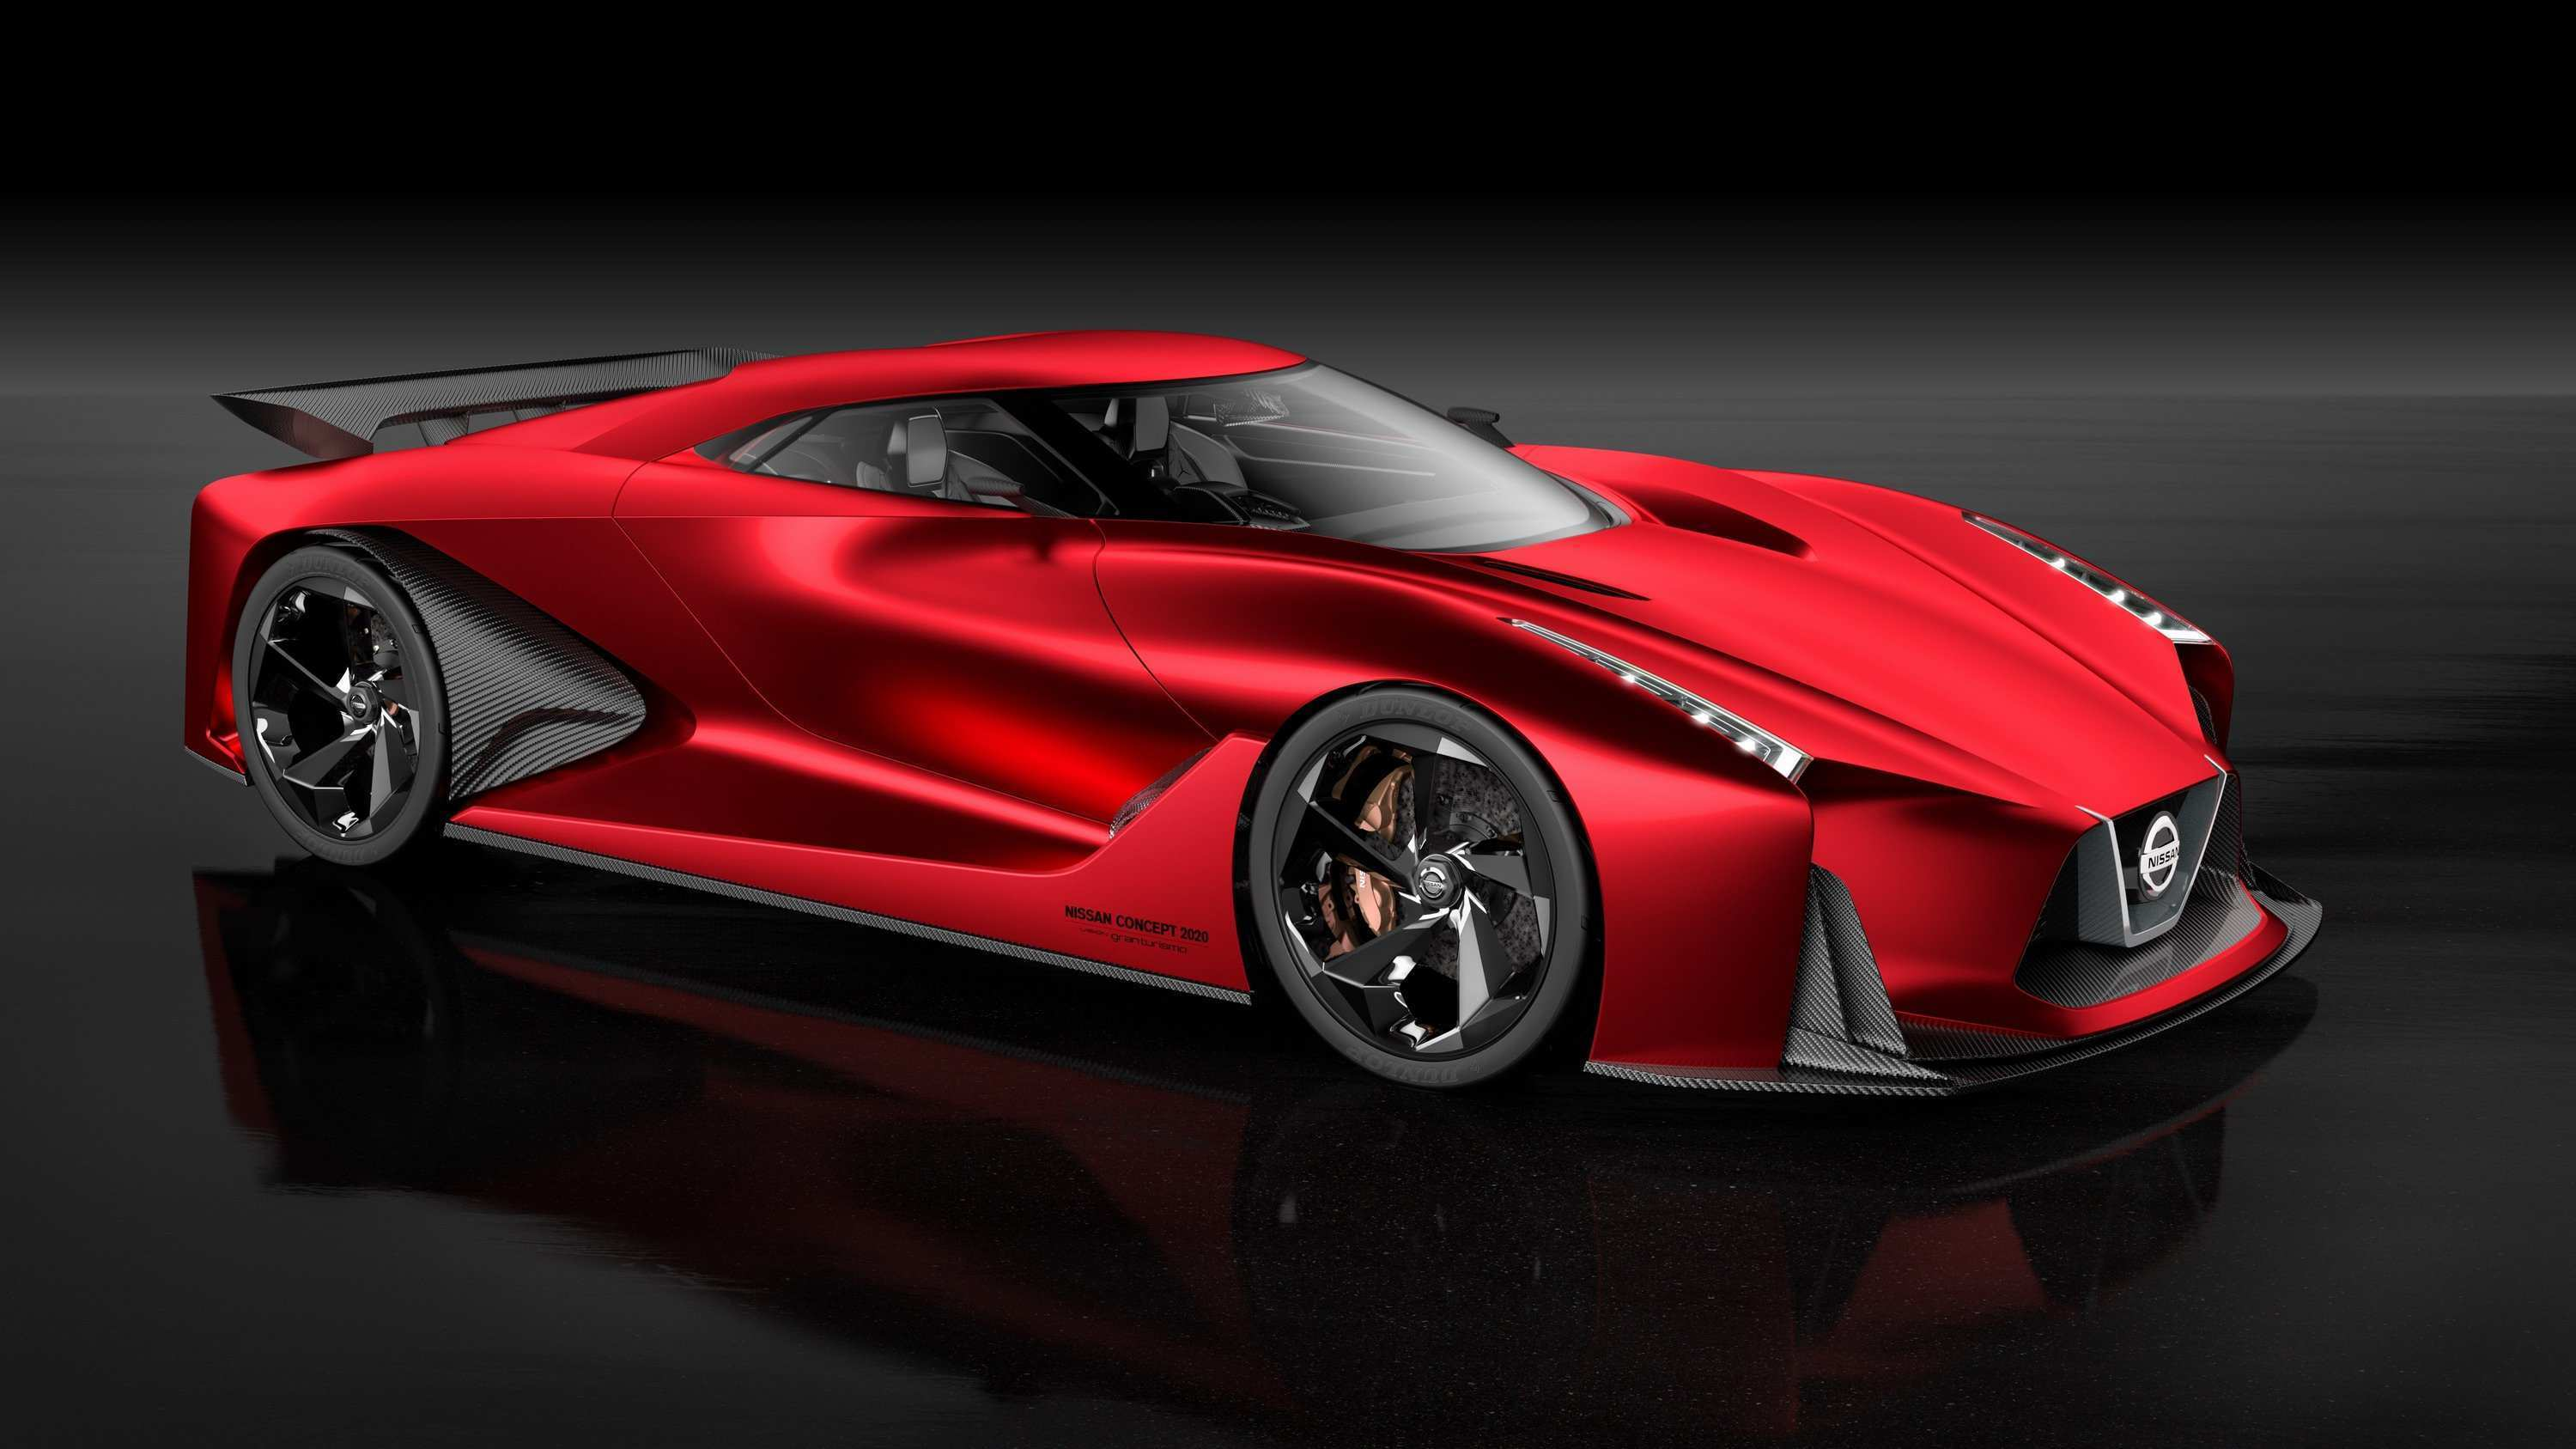 38 All New Nissan Concept 2020 Top Speed New Concept